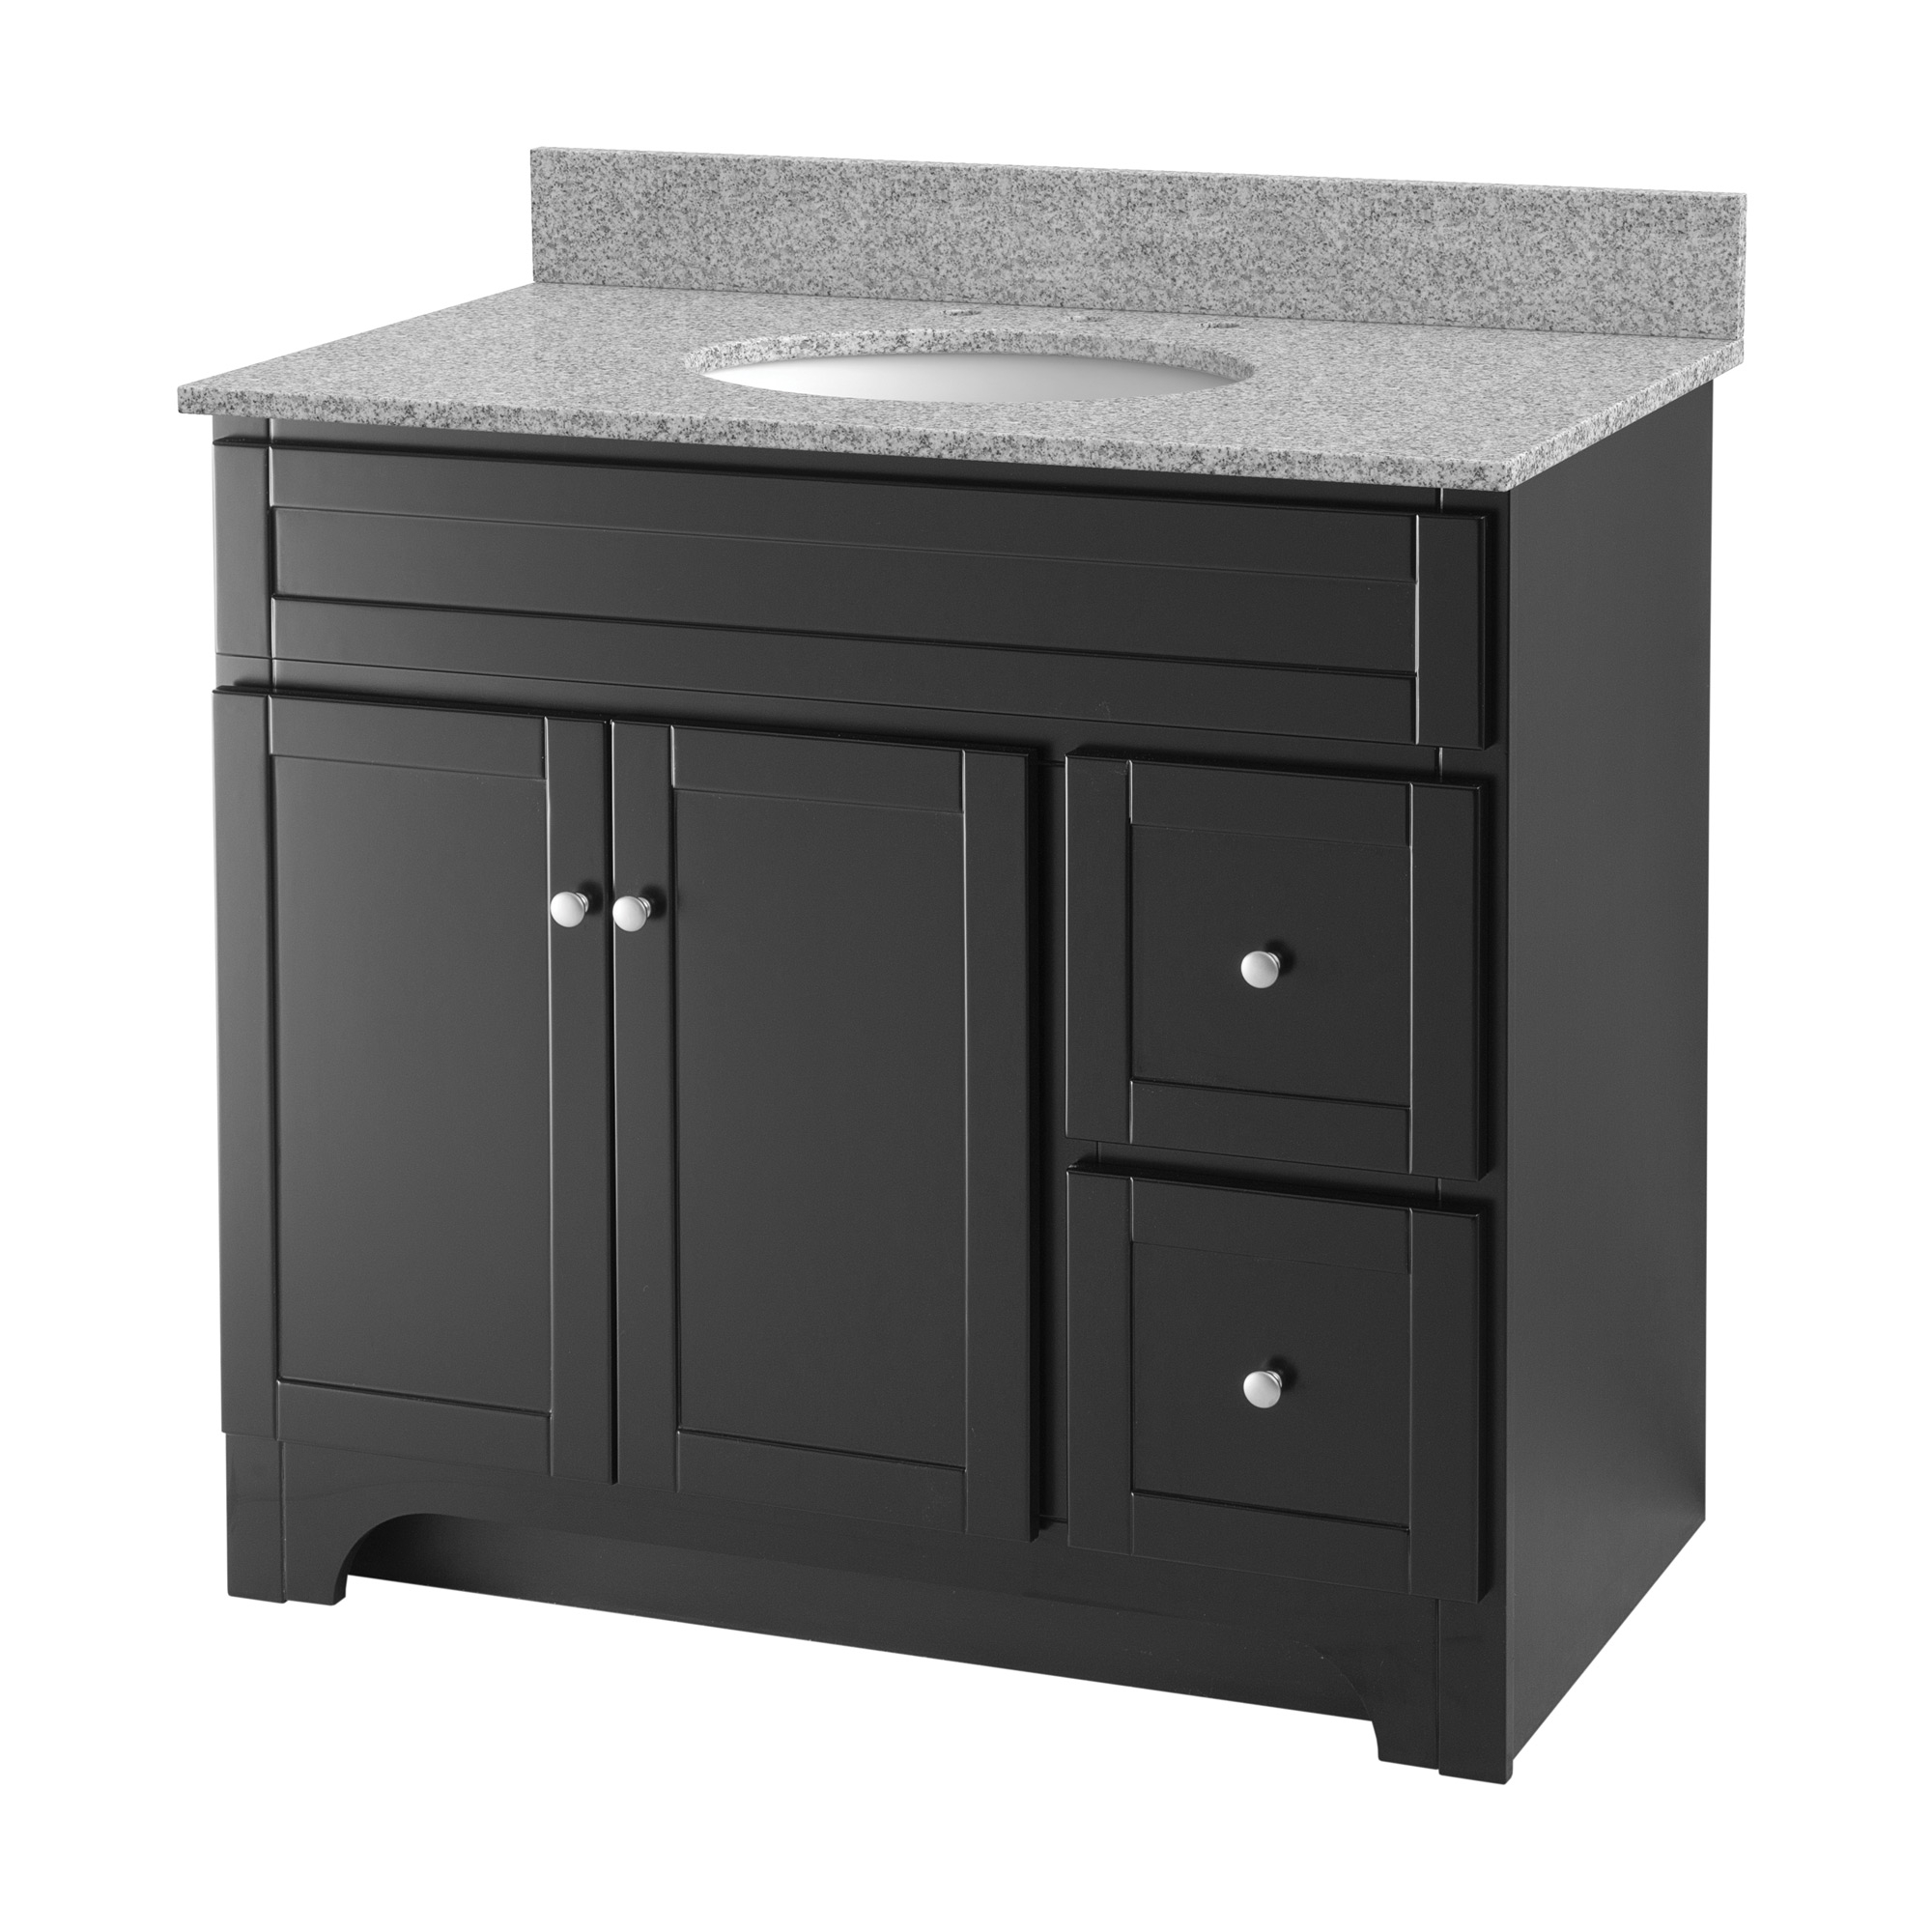 Beautiful Worthington Bathroom Vanity | Foremost Bath within Awesome 36 In Bathroom Vanity With Top